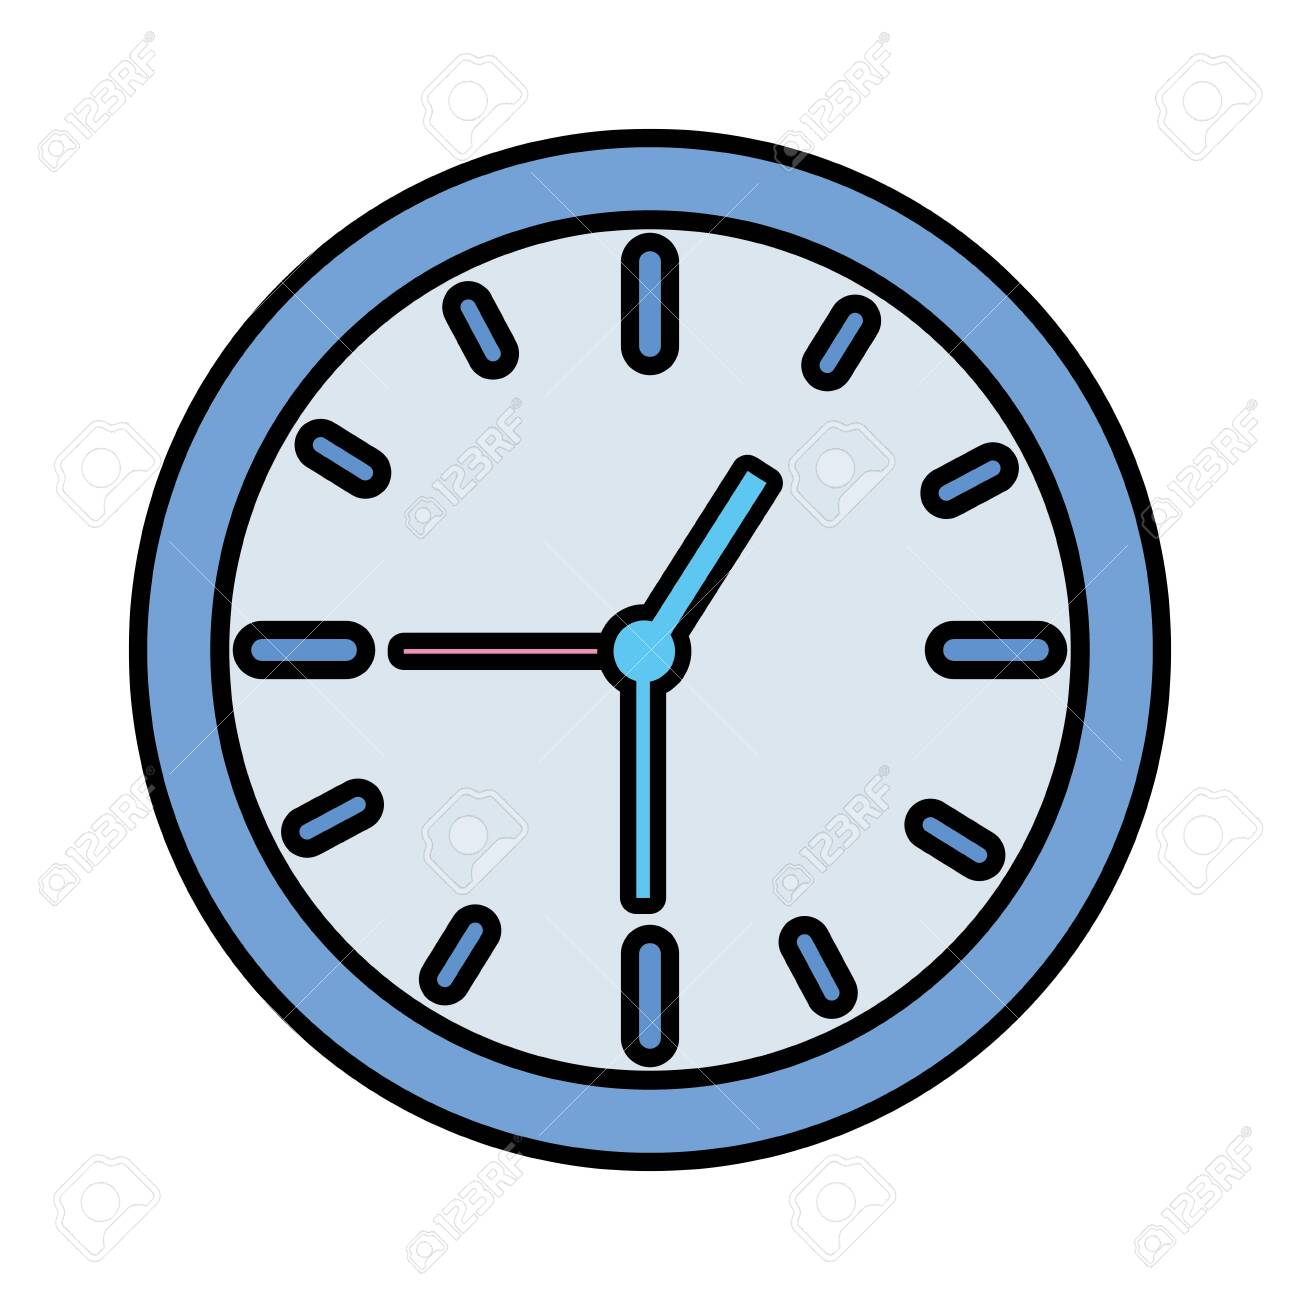 clock time icon on white background vector illustration vector illustration - 122647400